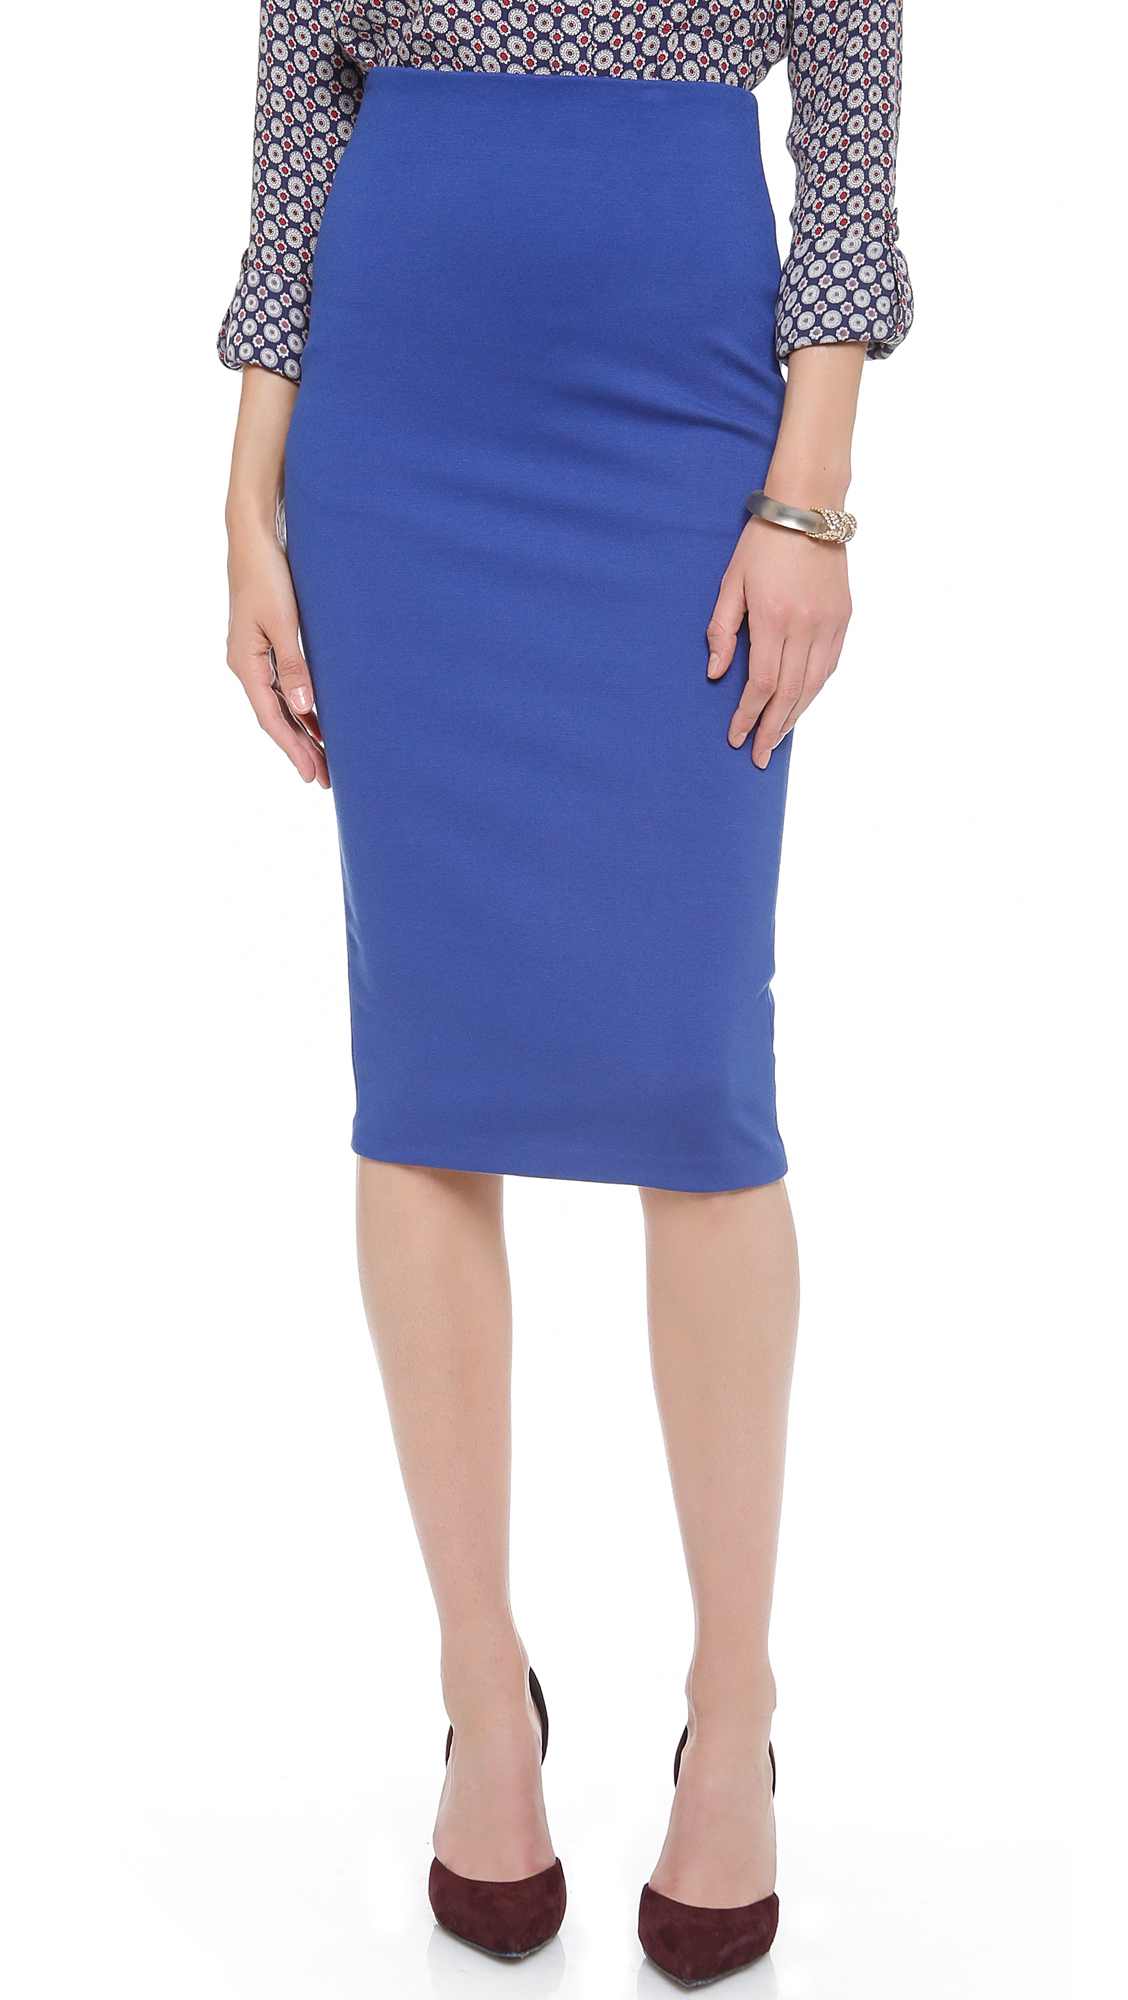 Find great deals on eBay for royal blue pencil skirt. Shop with confidence.